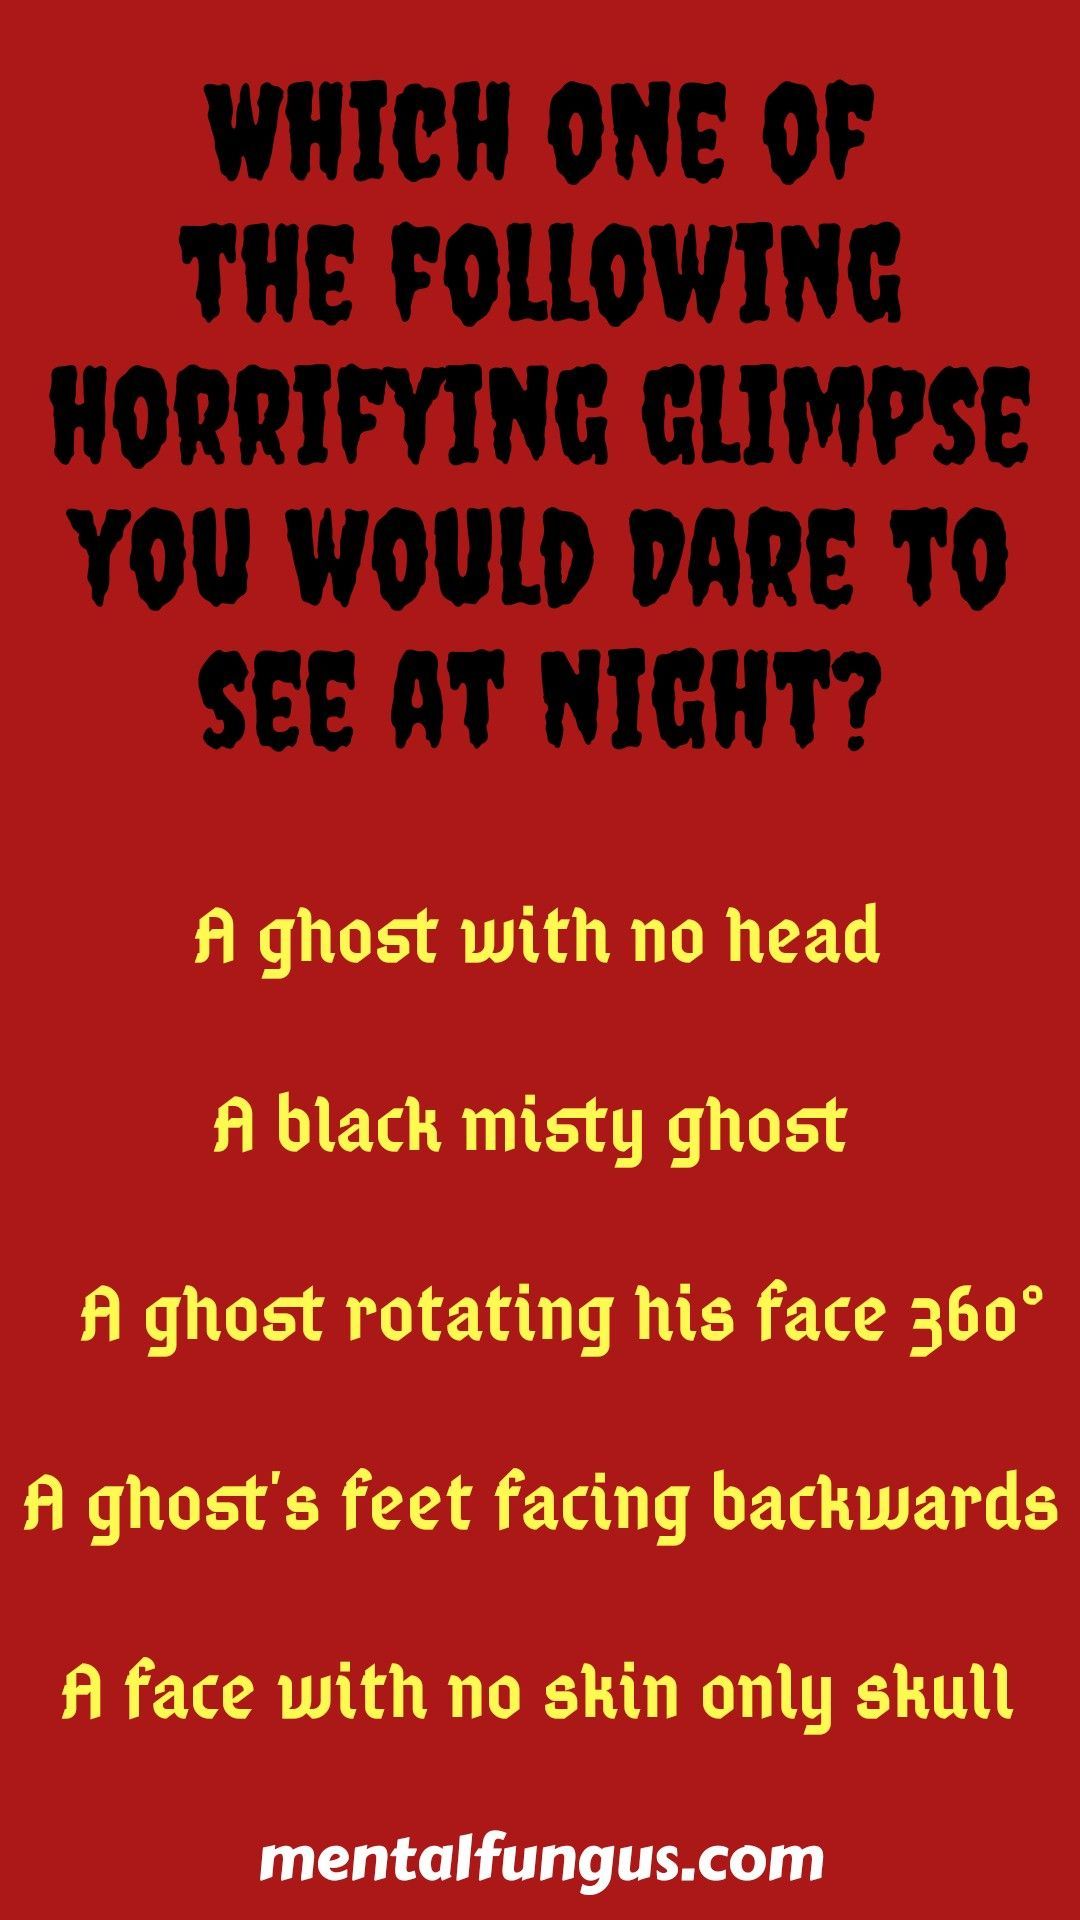 Which One Of The Following Horrifying Glimpse You Would Choose To See At Night Horror Quotes Scary Facts This Or That Questions